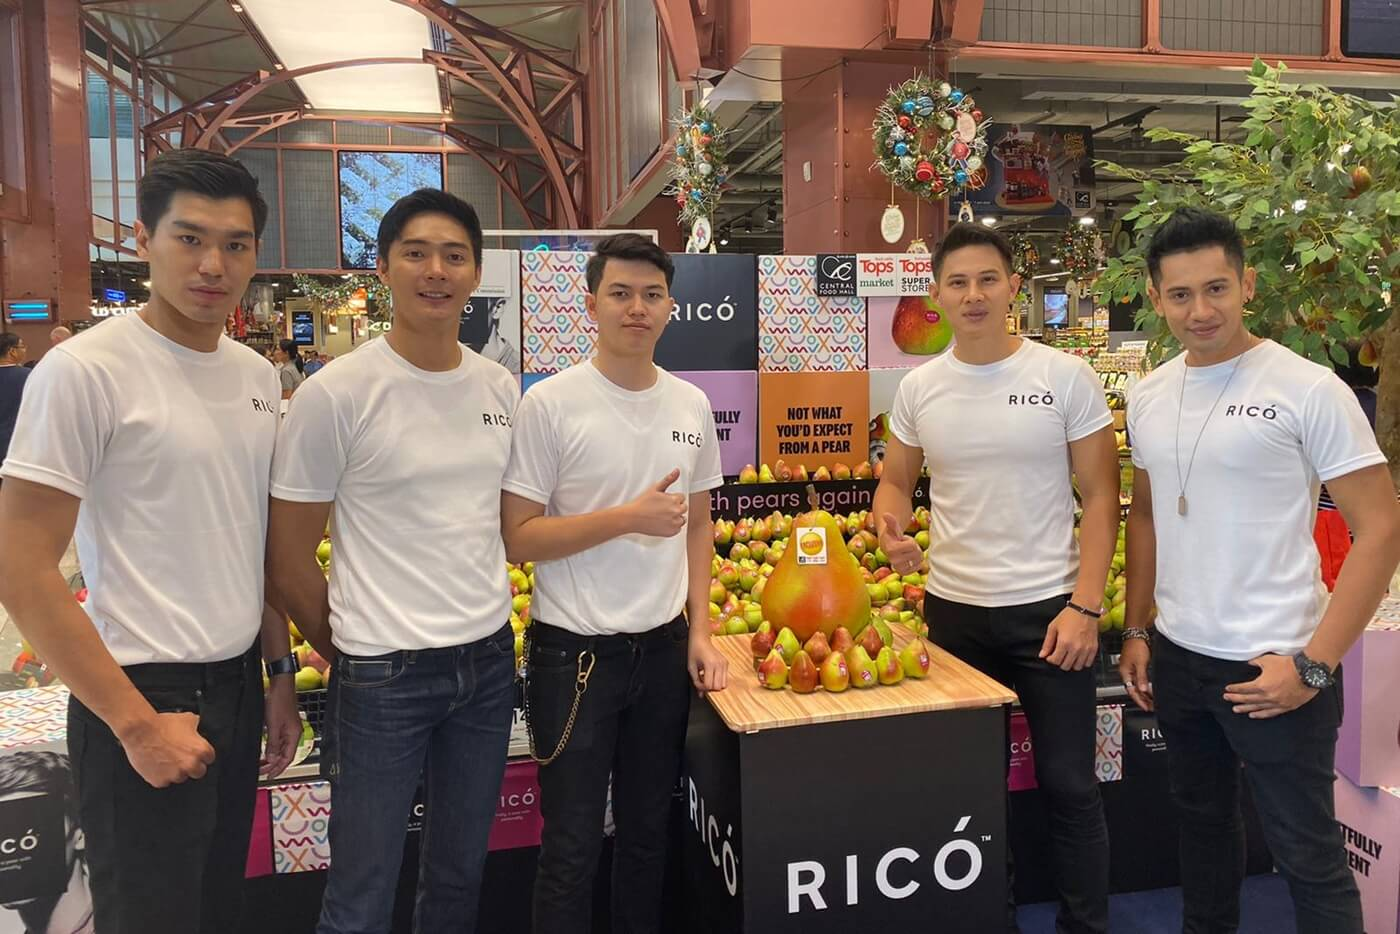 rico tops launch